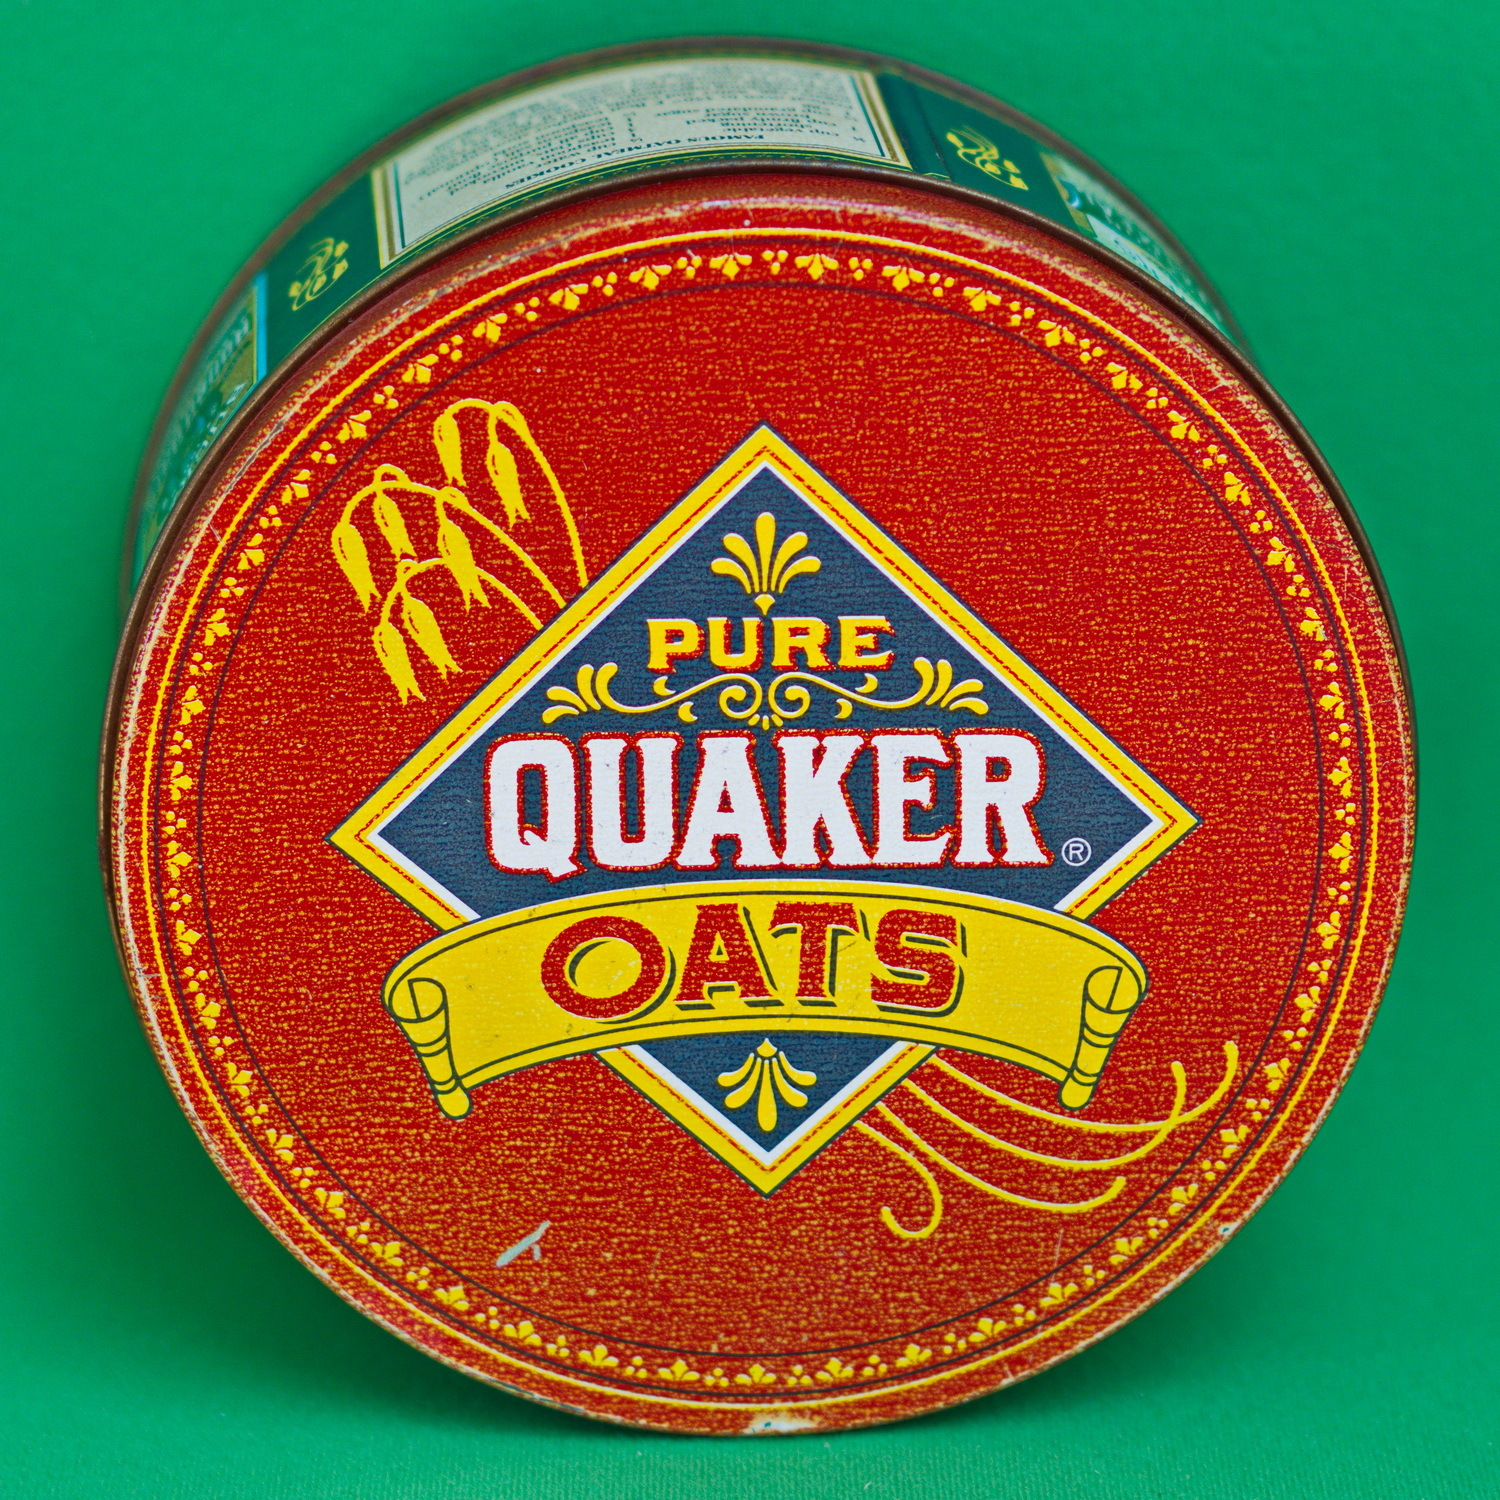 1983 Limited Edition Large Round Quaker Oats Collectible Metal Container